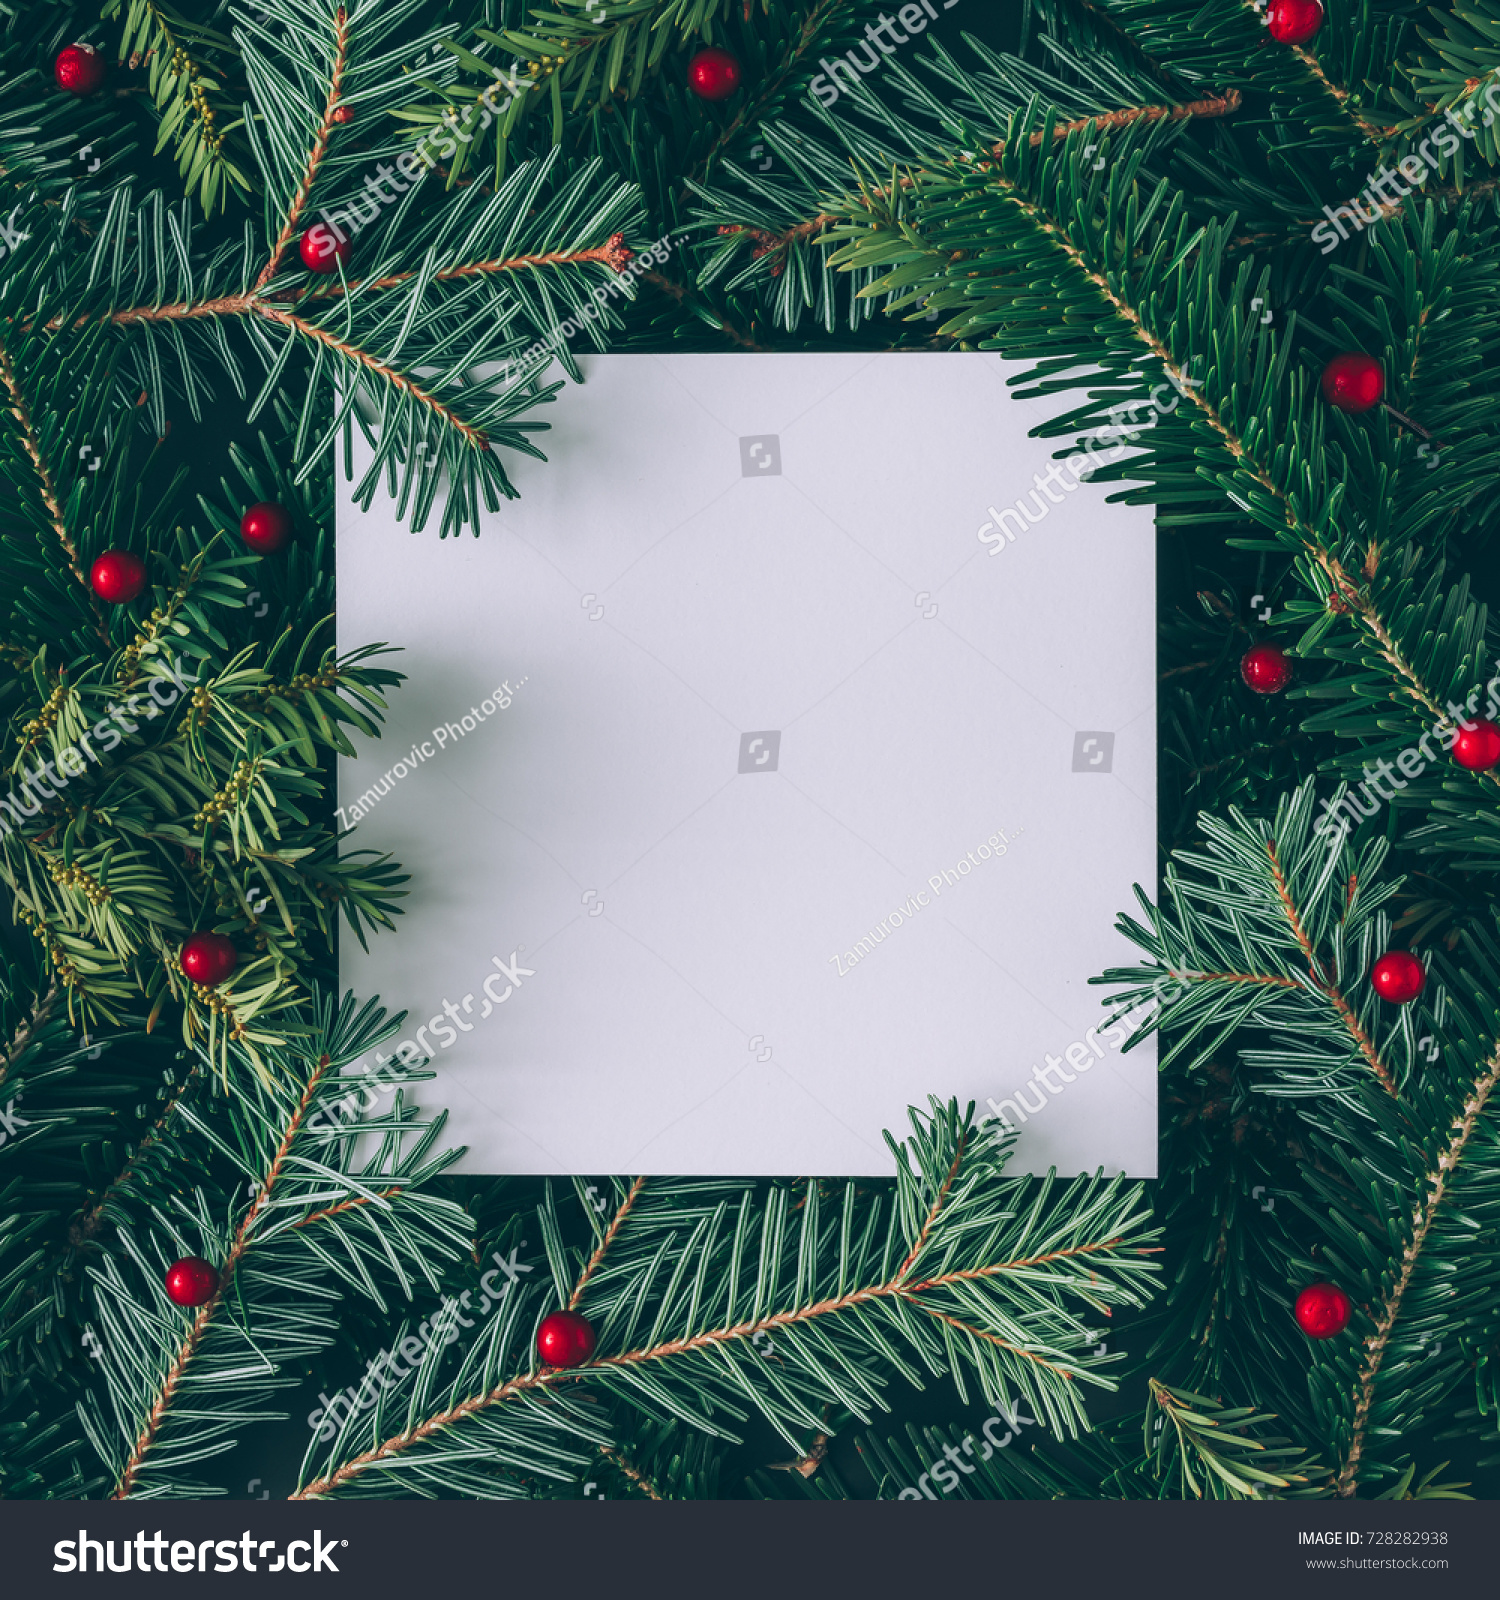 Creative layout made of Christmas tree branches with paper card note. Flat lay. Nature New Year concept. #728282938